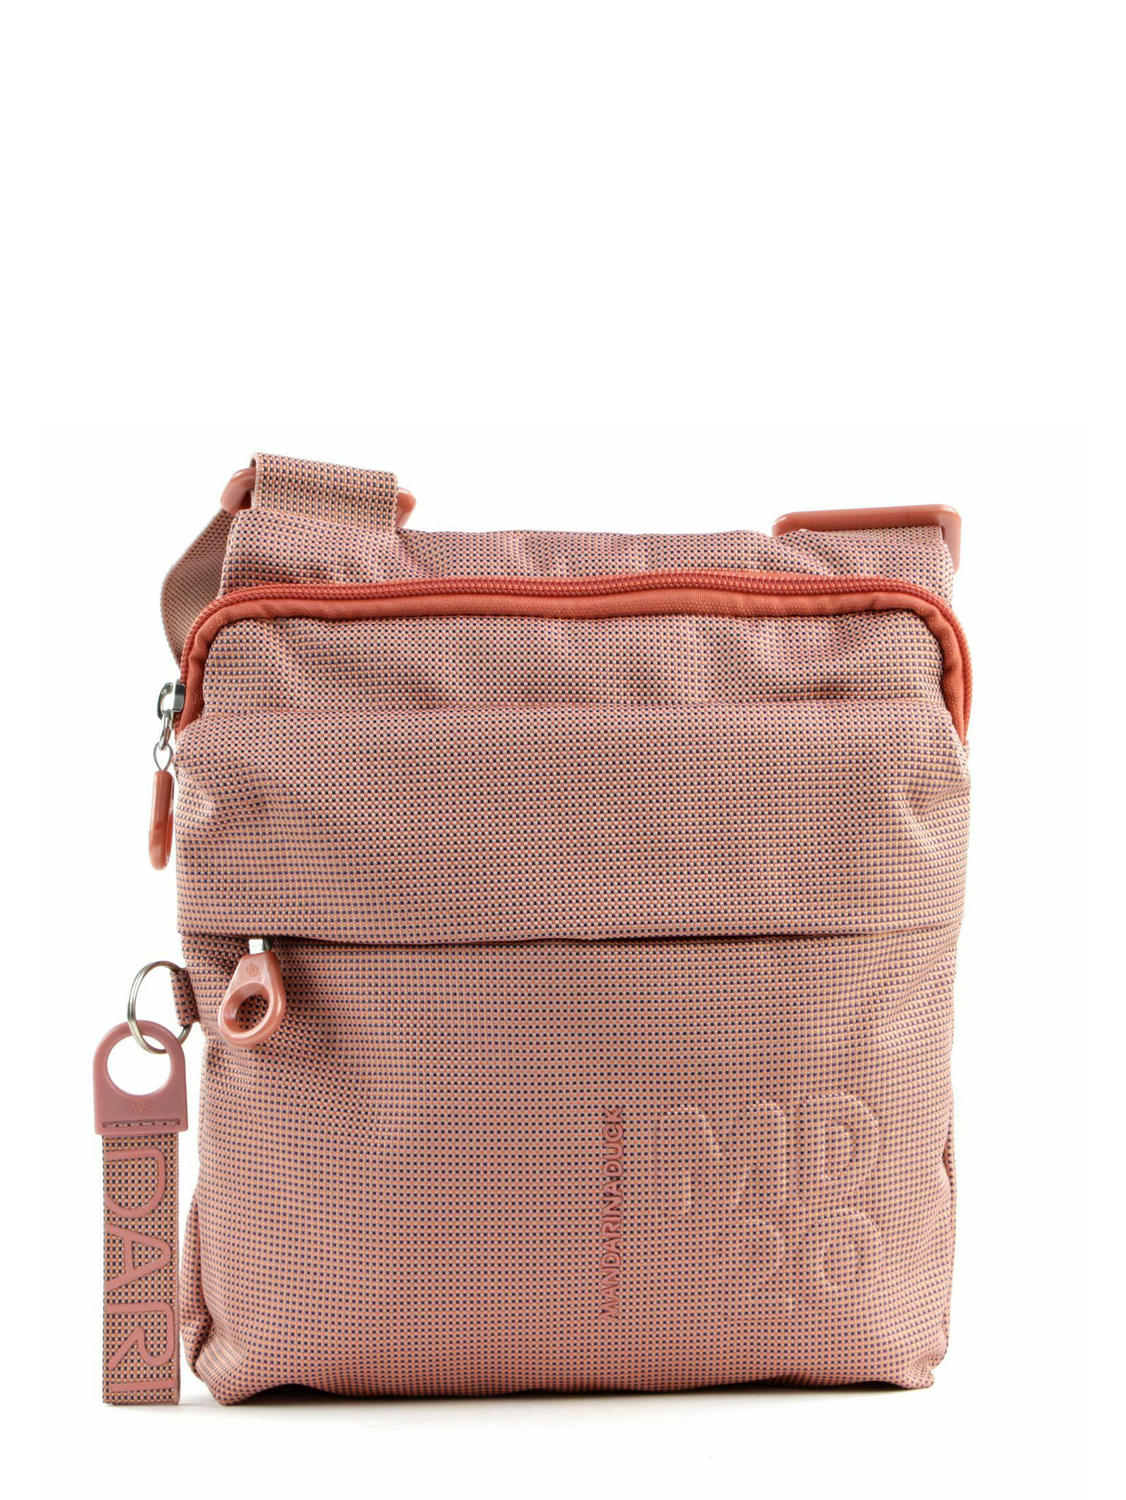 Women's Bags - MD20 Mini shoulder bag